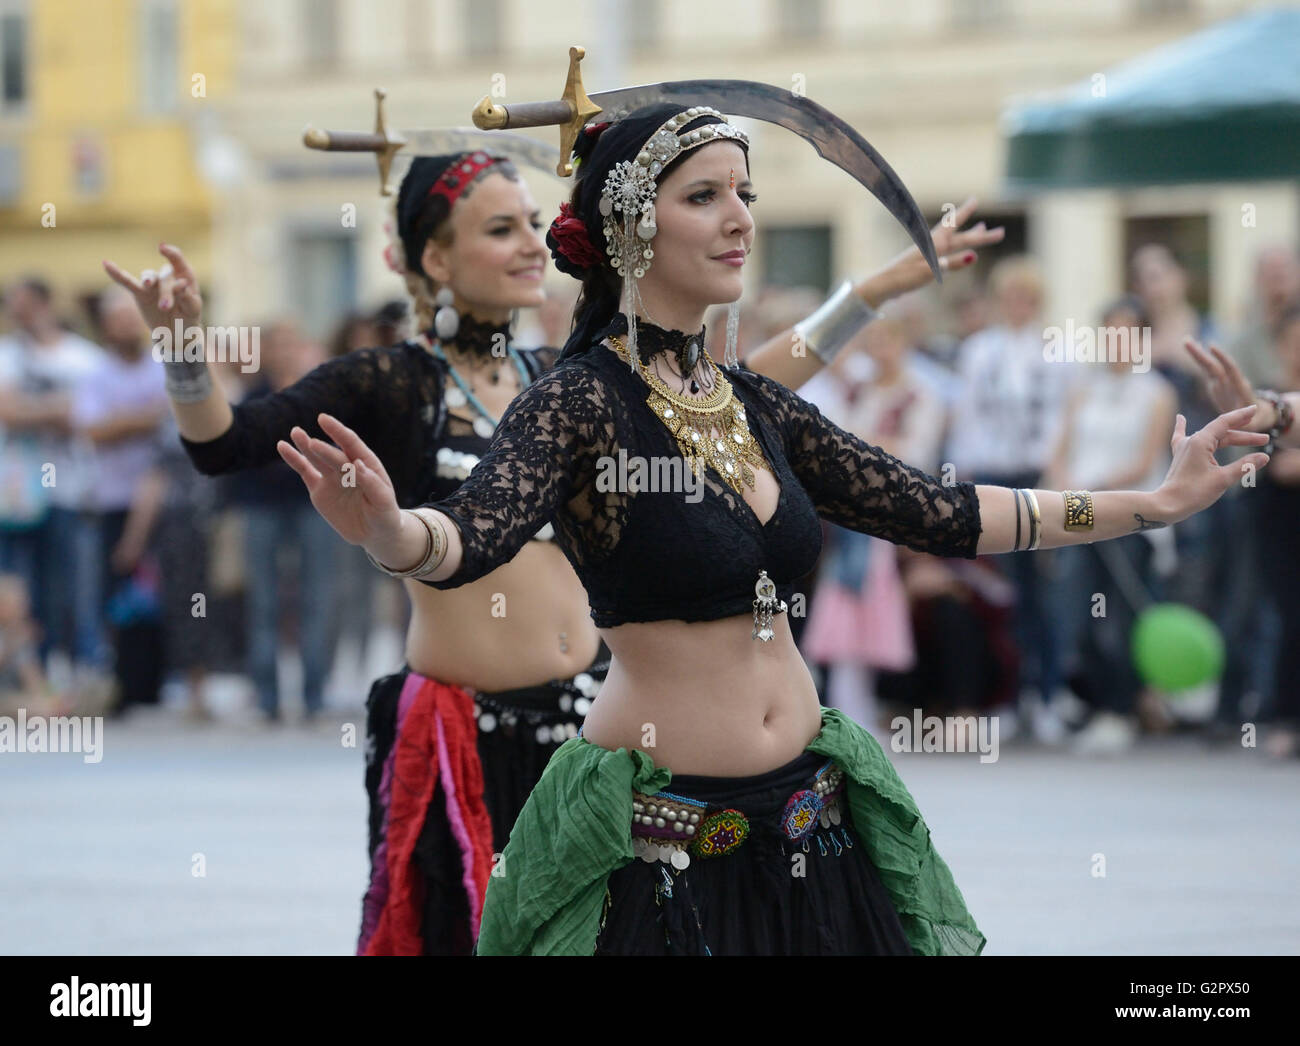 """Zagreb, Croatia. 2nd June, 2016. Street performers entertain audience during the 20th """"Cest is d'best"""" international Stock Photo"""